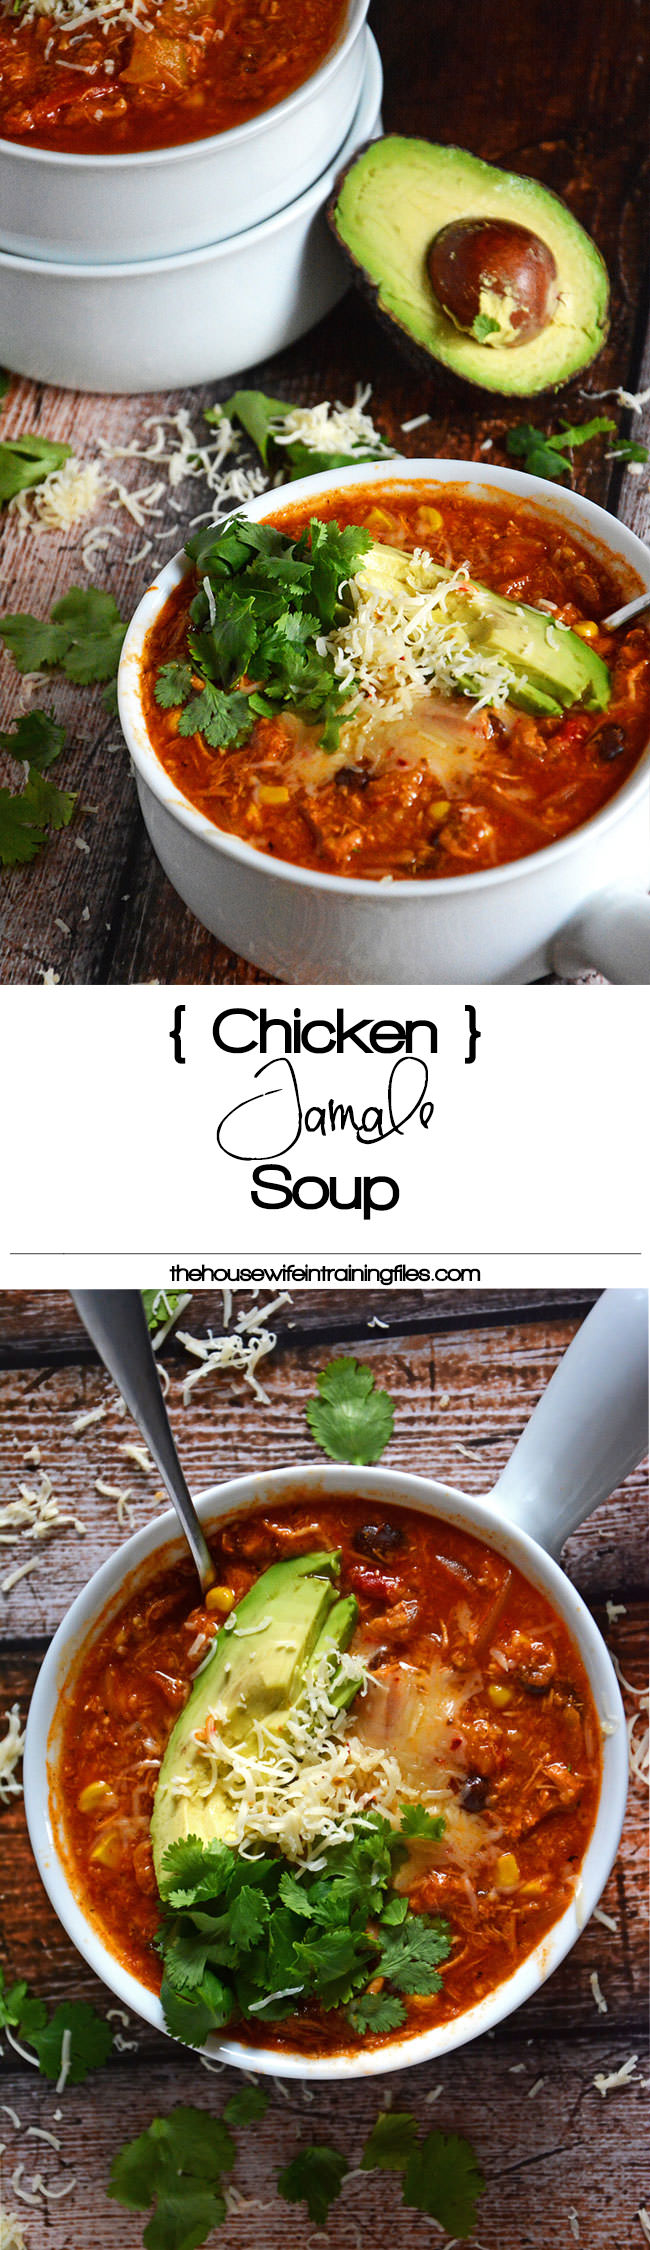 Chicken Tamale Soup is a full on spice with a slight sweetness much like your favorite tamale! Comes together quickly and is naturally gluten free! #glutenfree